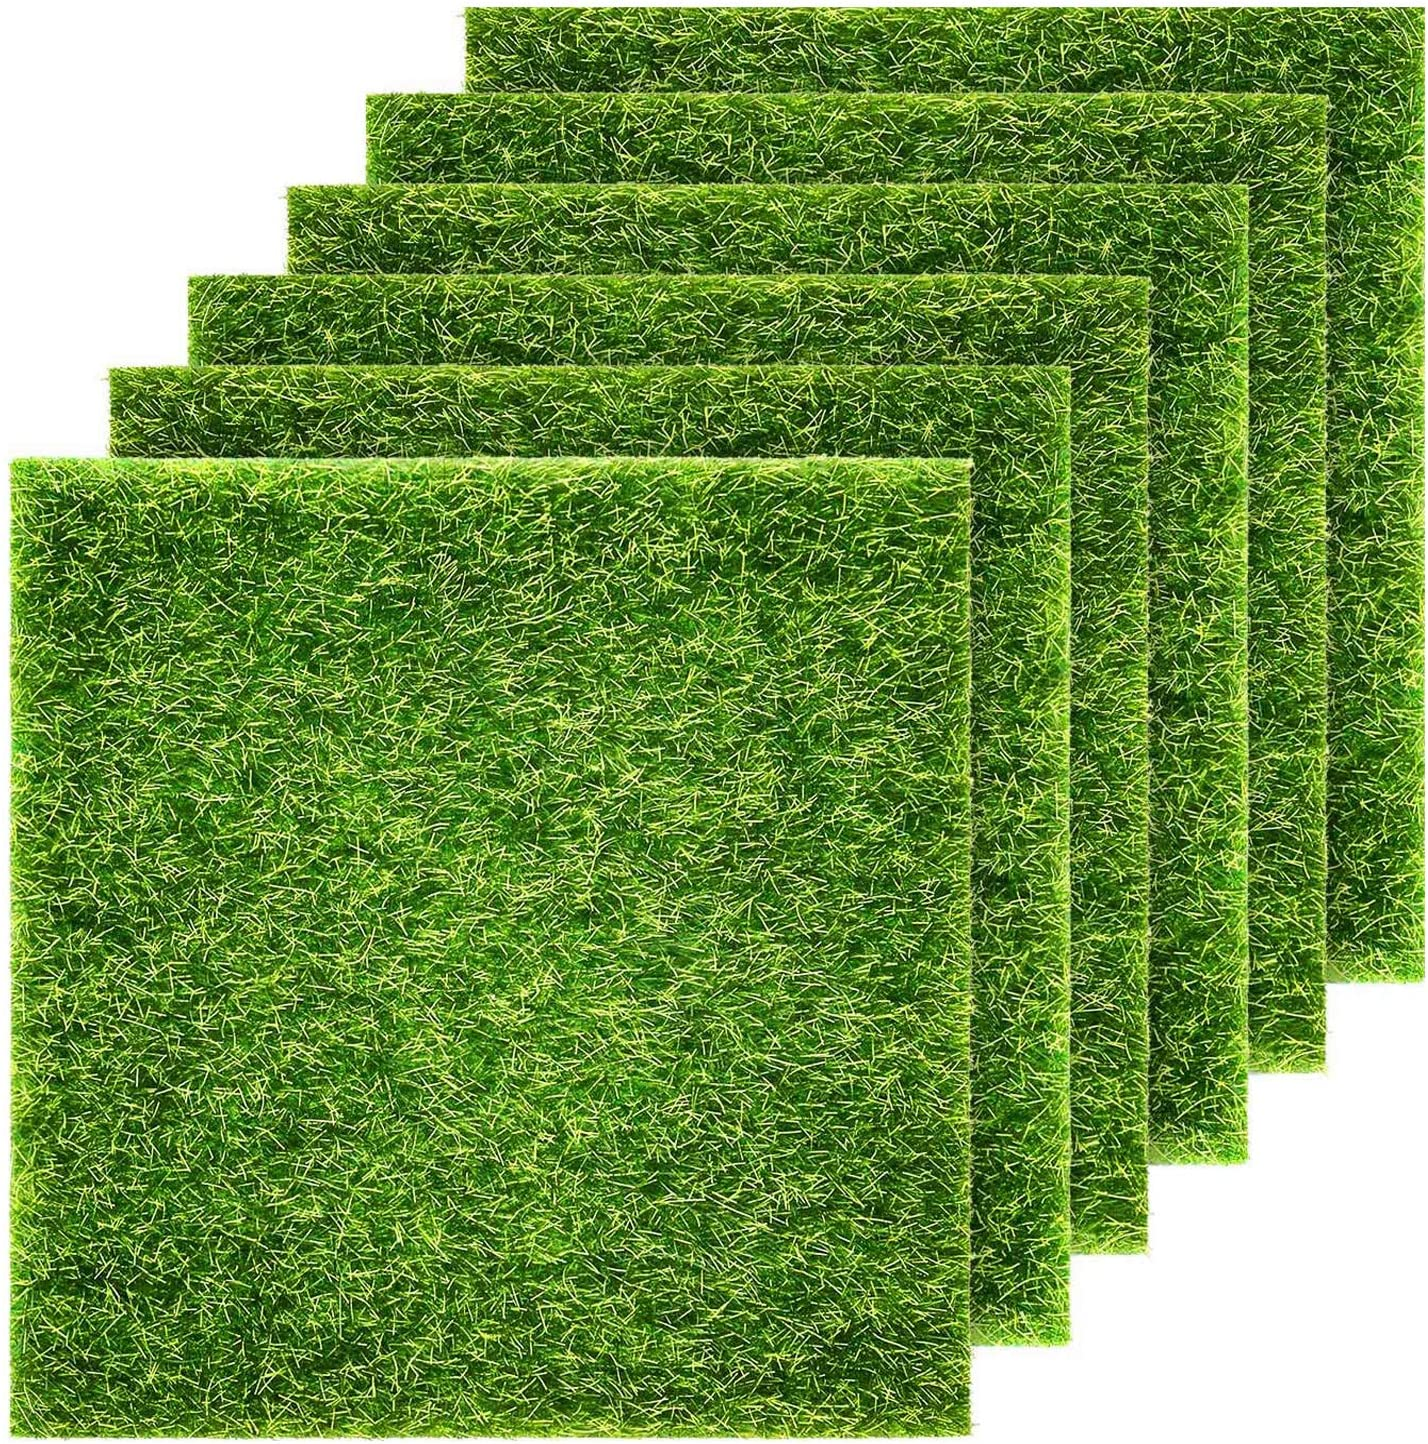 KISEER 6 Pcs Artificial Garden Grass 6 x 6 Inches Life-Like Artificial Grass Lawn Miniature Ornament for Fairy Garden Dollhouse DIY Decoration